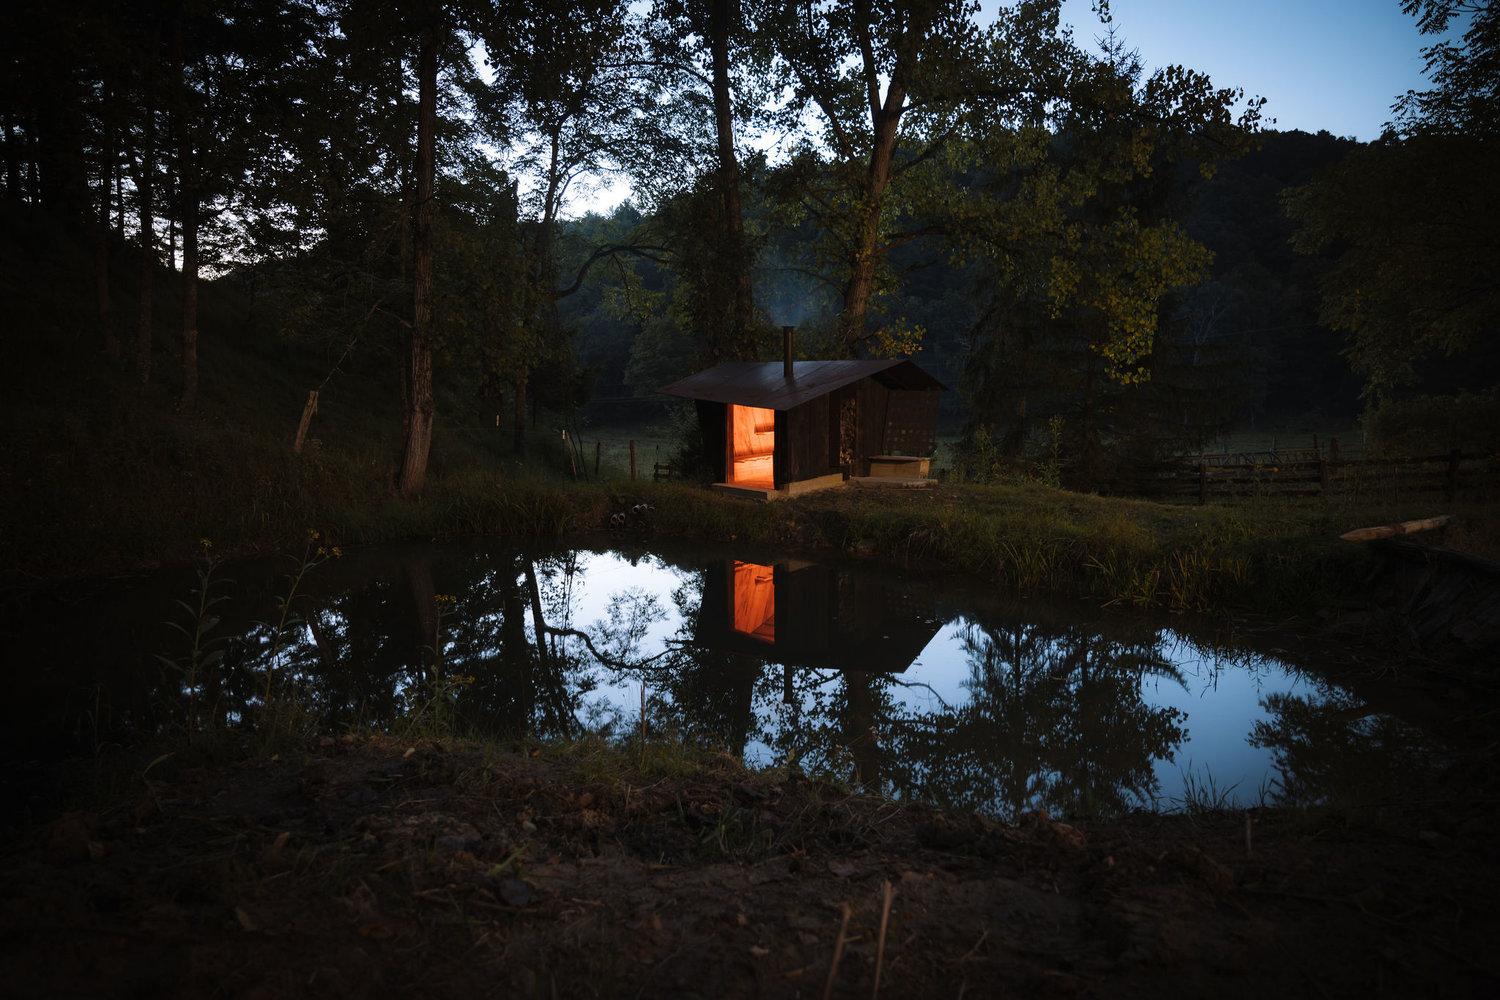 Rocky Knob Sauna Grid Architects A Modern Contemporary Architecture And Design Firm In The Washington Dc Maryland Virginia Area Serving Clients Worldwide Creative Innovative Unique Design Architect Modern